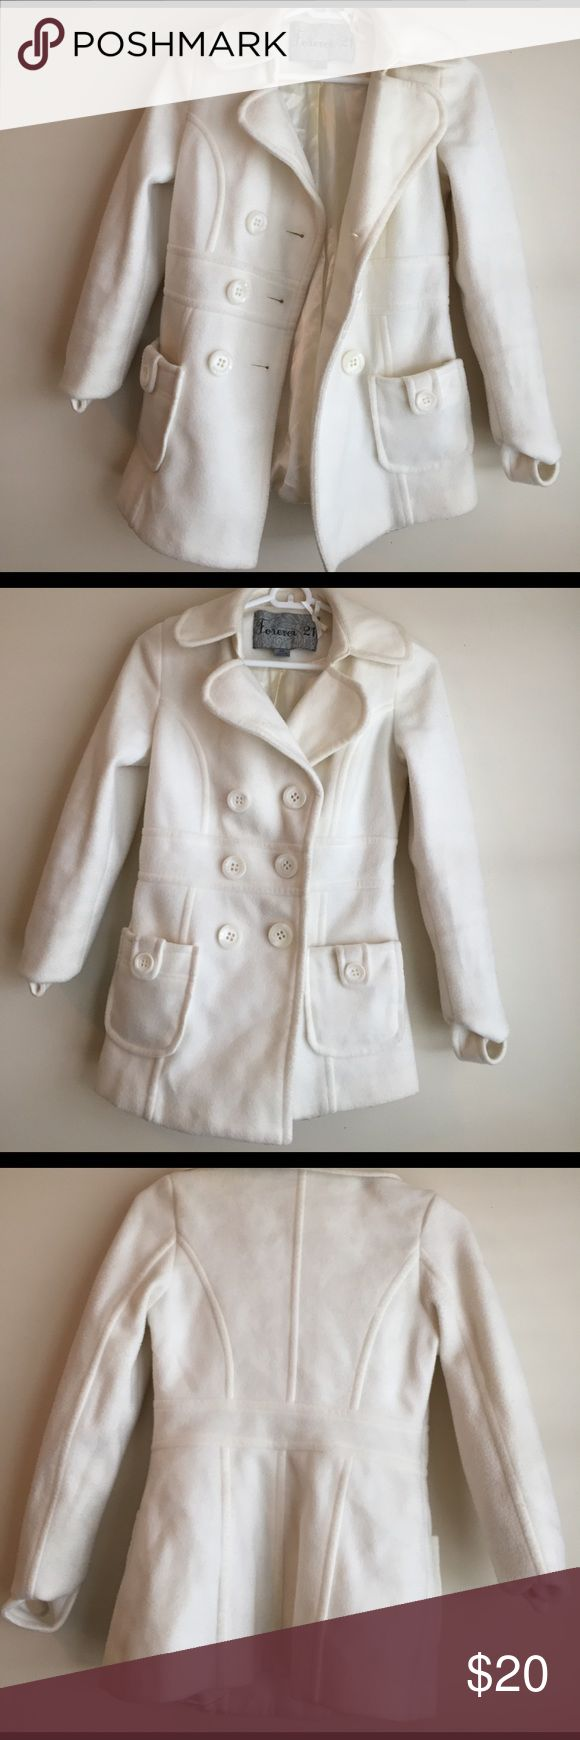 Forever 21 Cream coat Double breasted peacoat, forever 21 Forever 21 Jackets & Coats Pea Coats